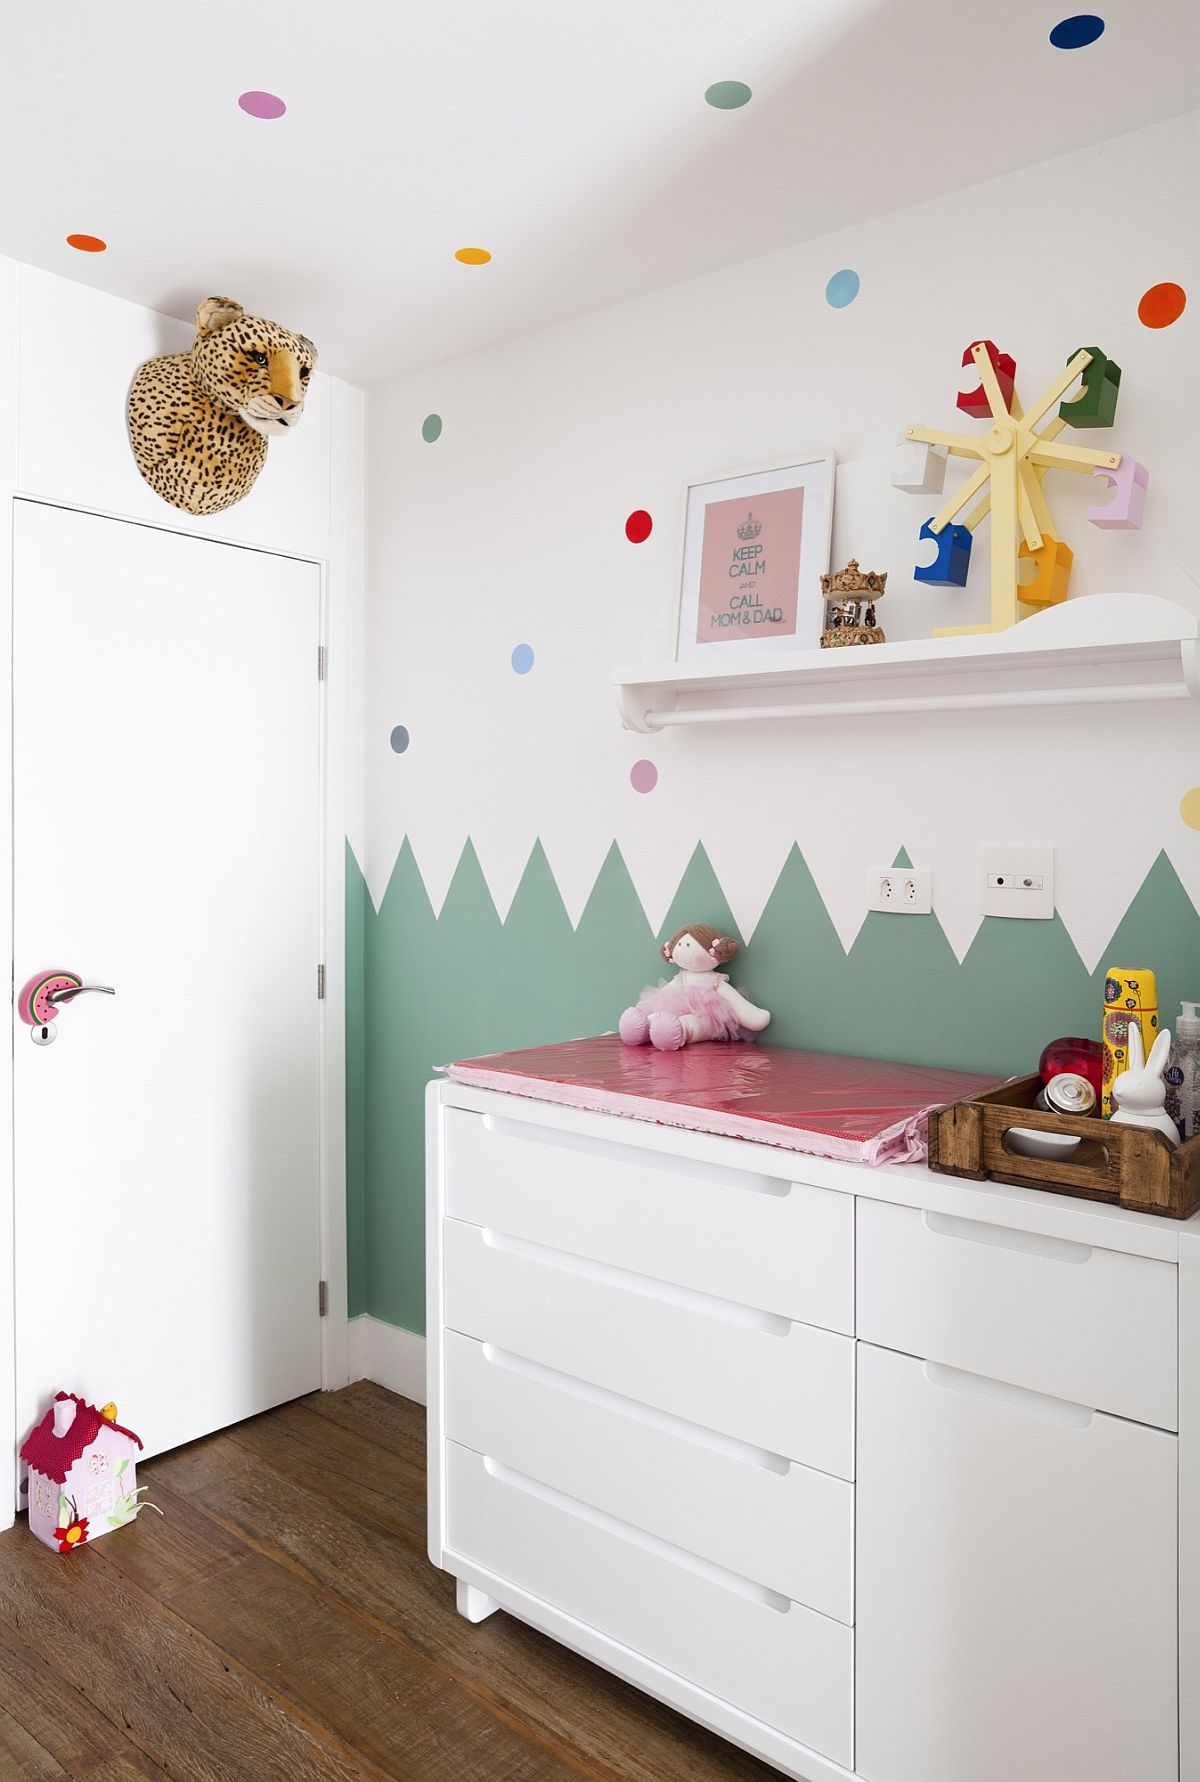 Nursery in white with colorful wall decal